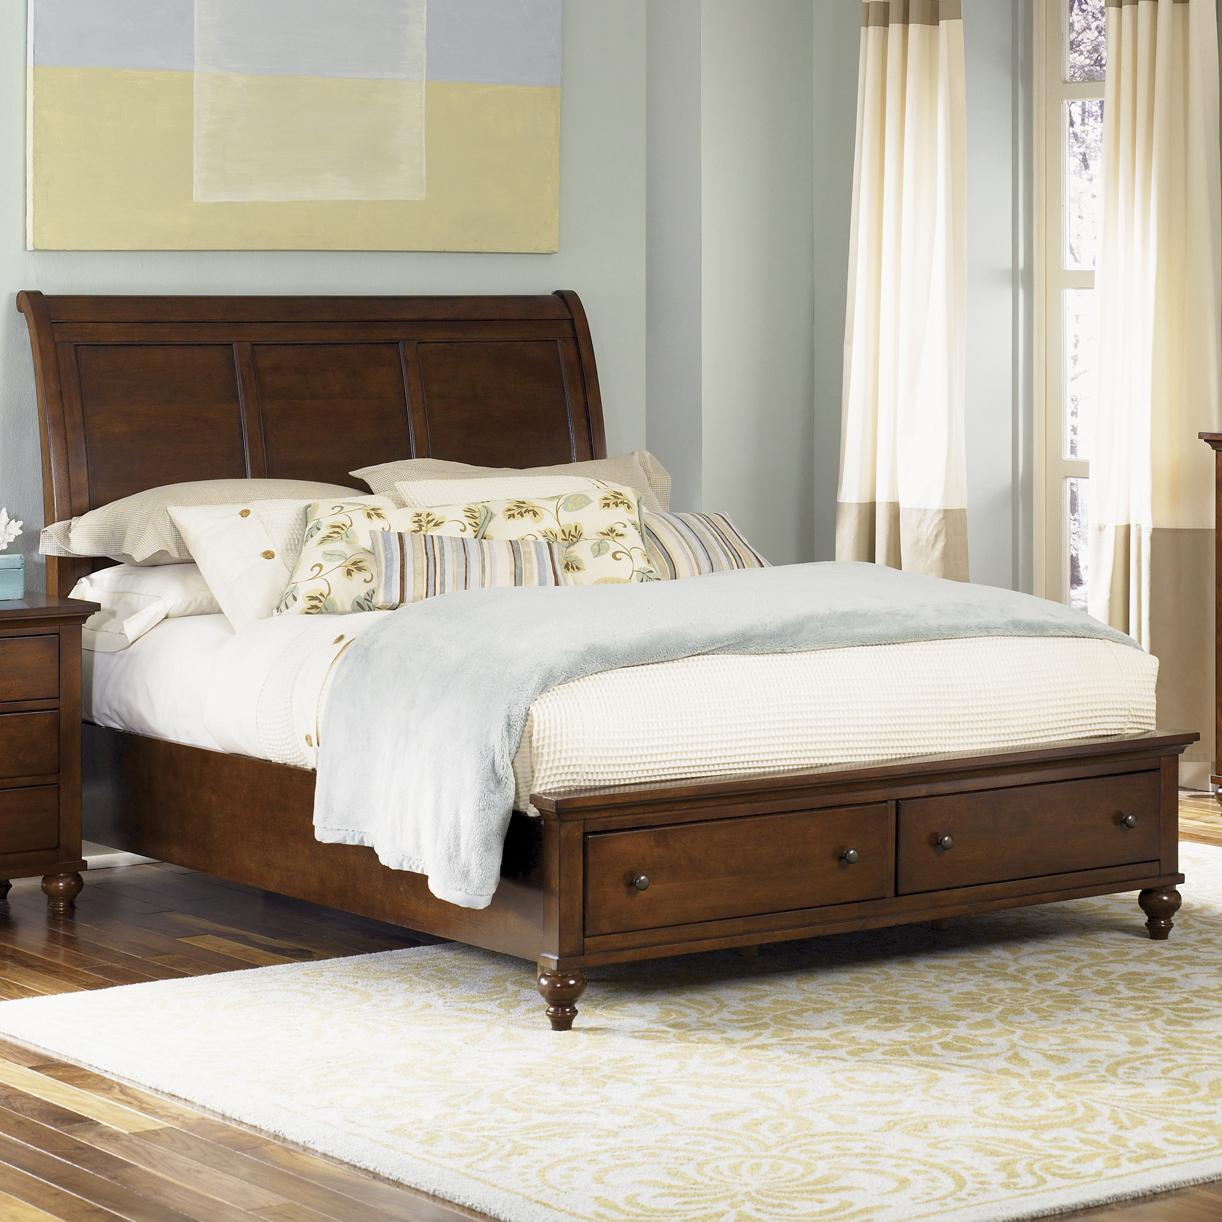 liberty furniture hamilton 341 br qsb transitonal queen sleigh bed with 2 drawer storage. Black Bedroom Furniture Sets. Home Design Ideas